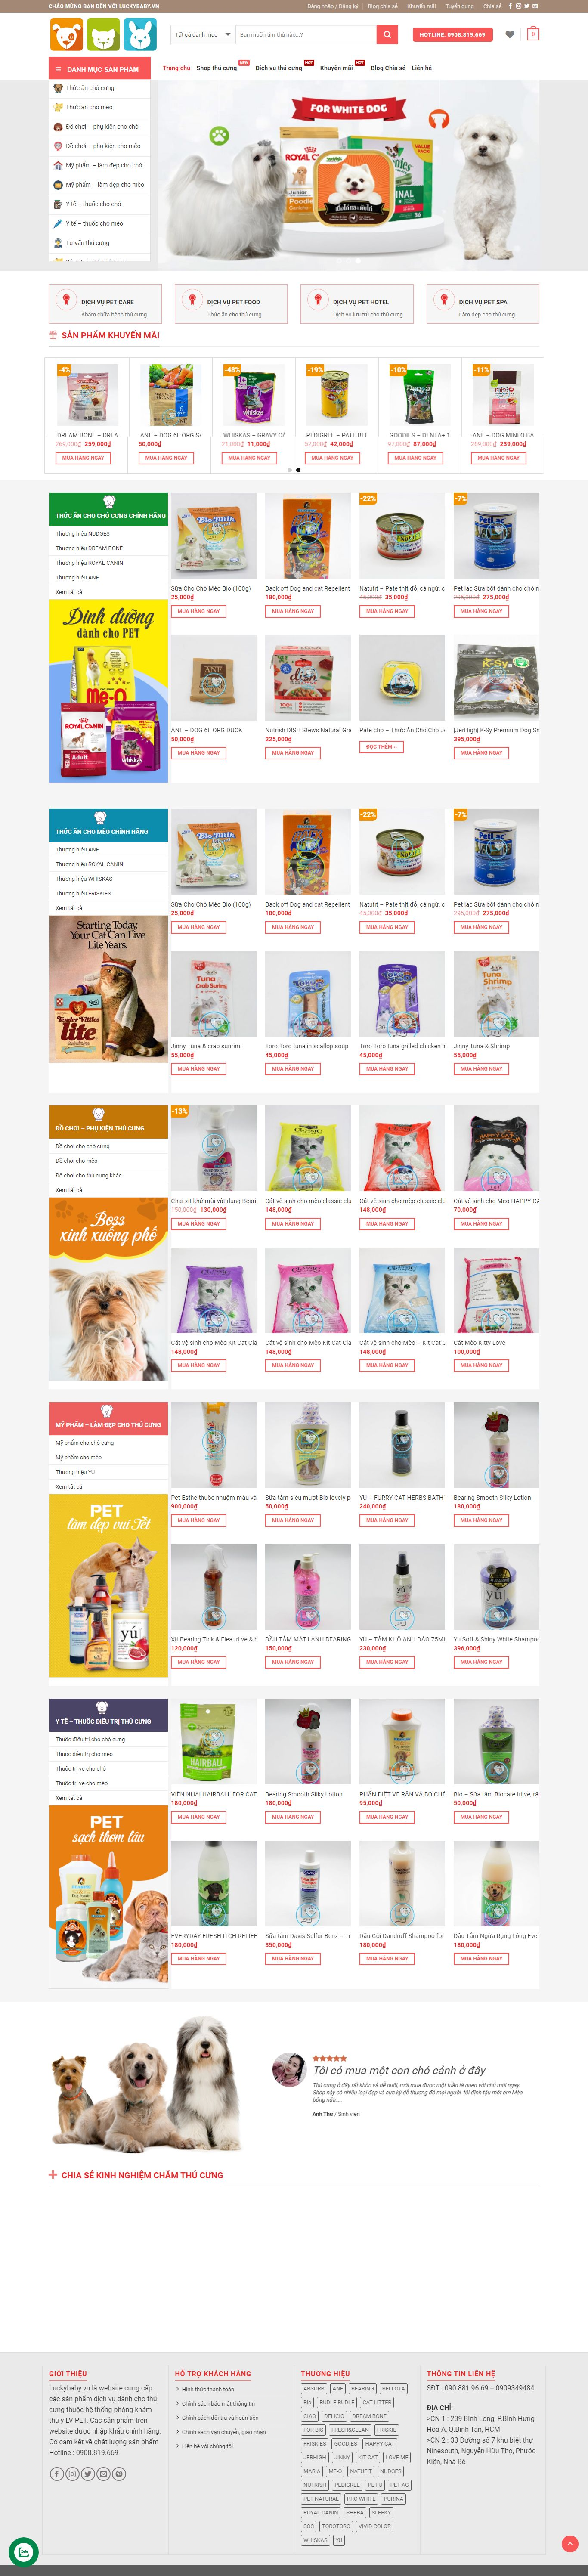 Thiết kế Website dịch vụ thú y - luckybaby.vn